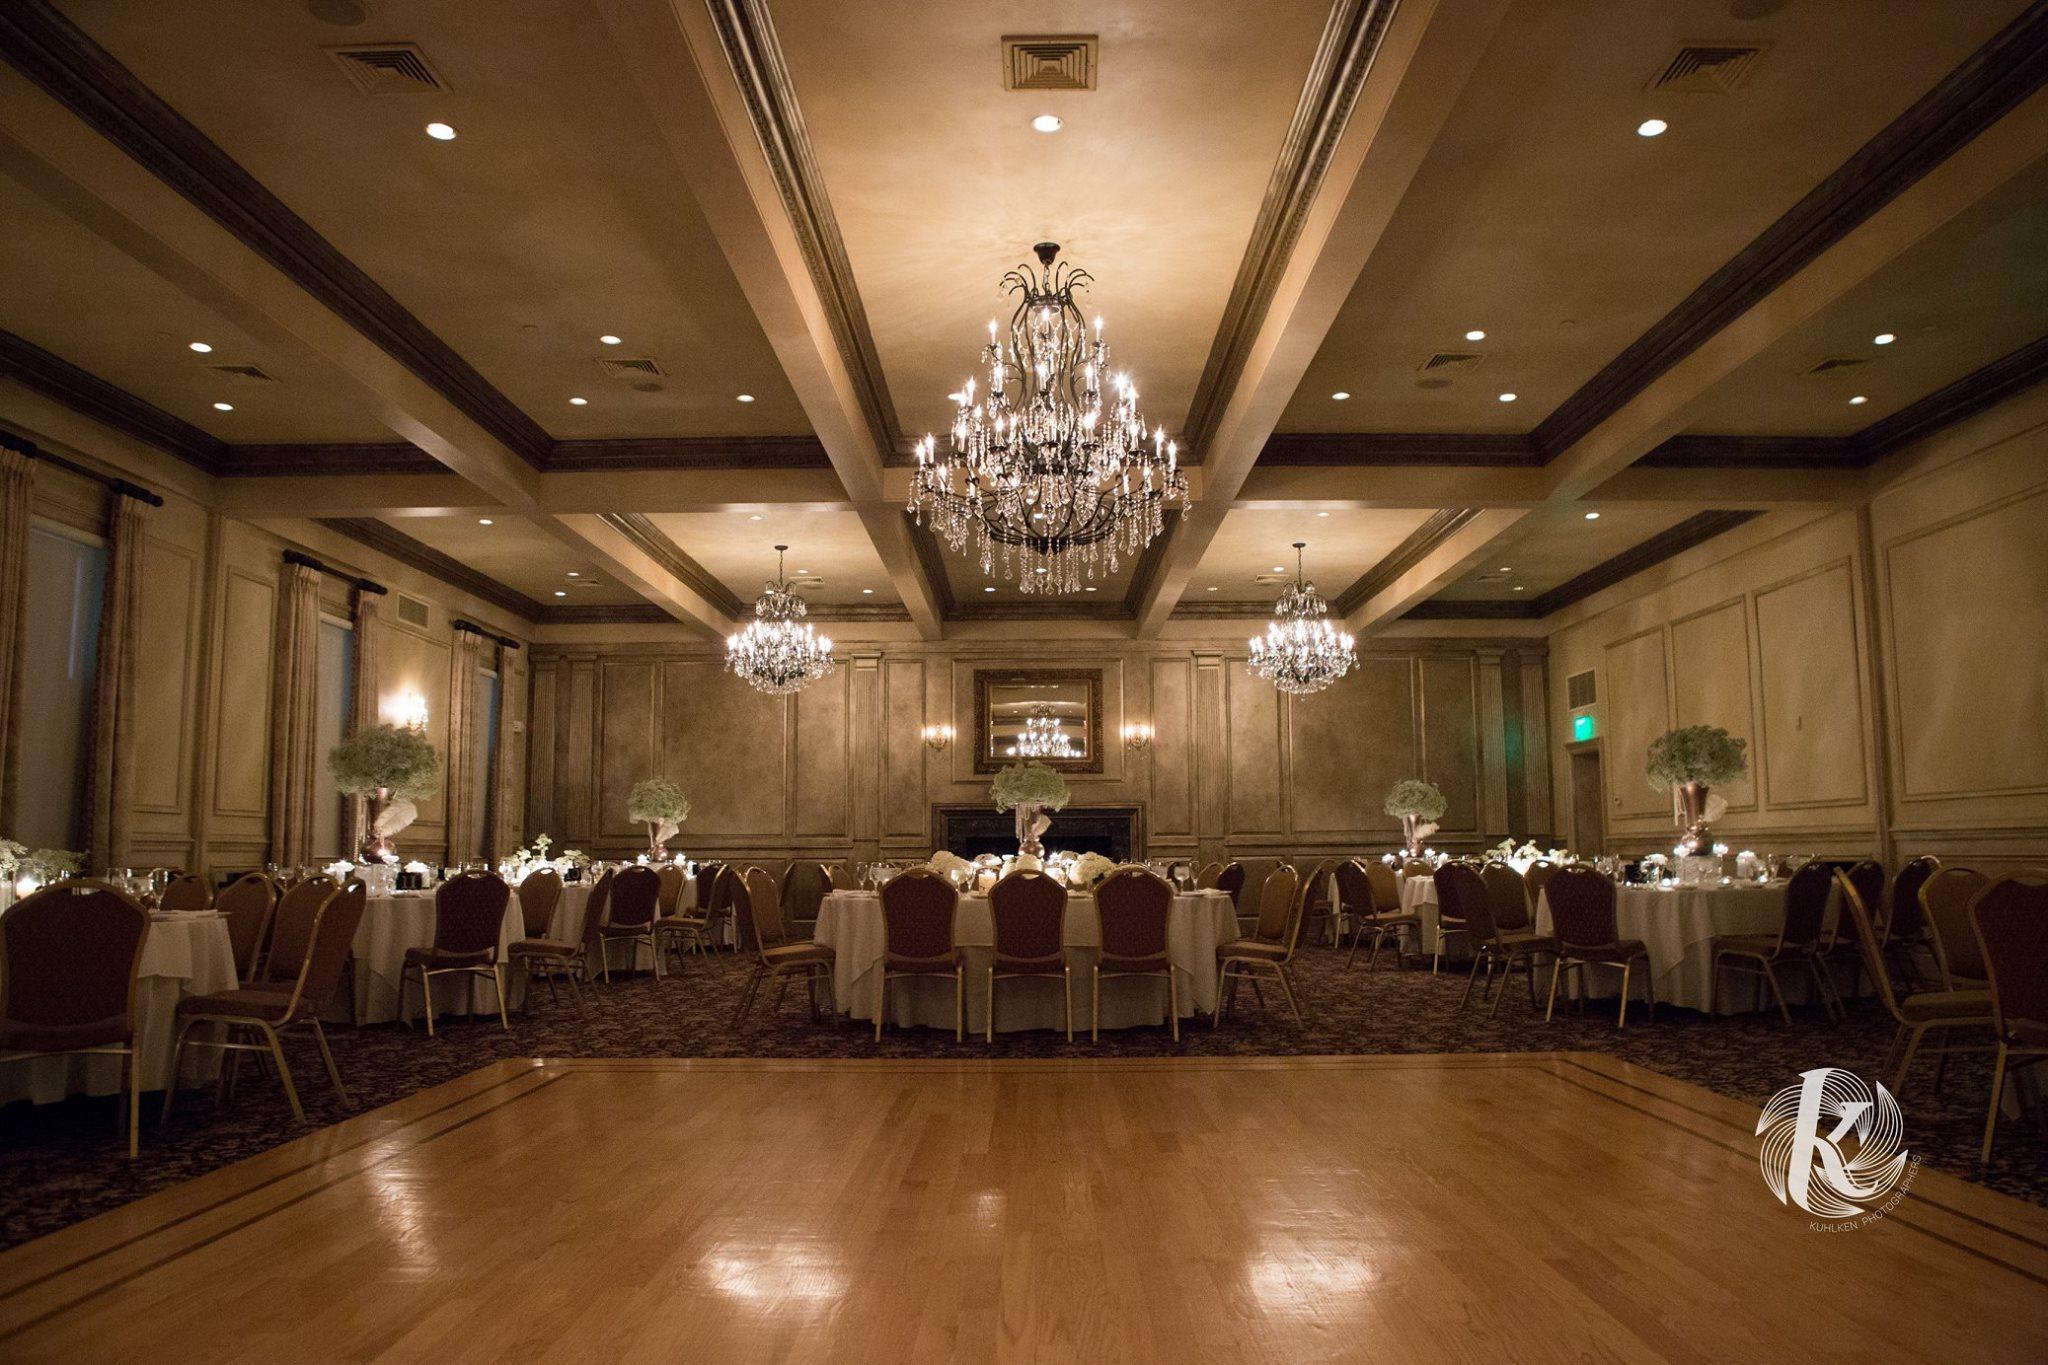 Venue: The American Hotel     Photographer: Kuhlken Photographers